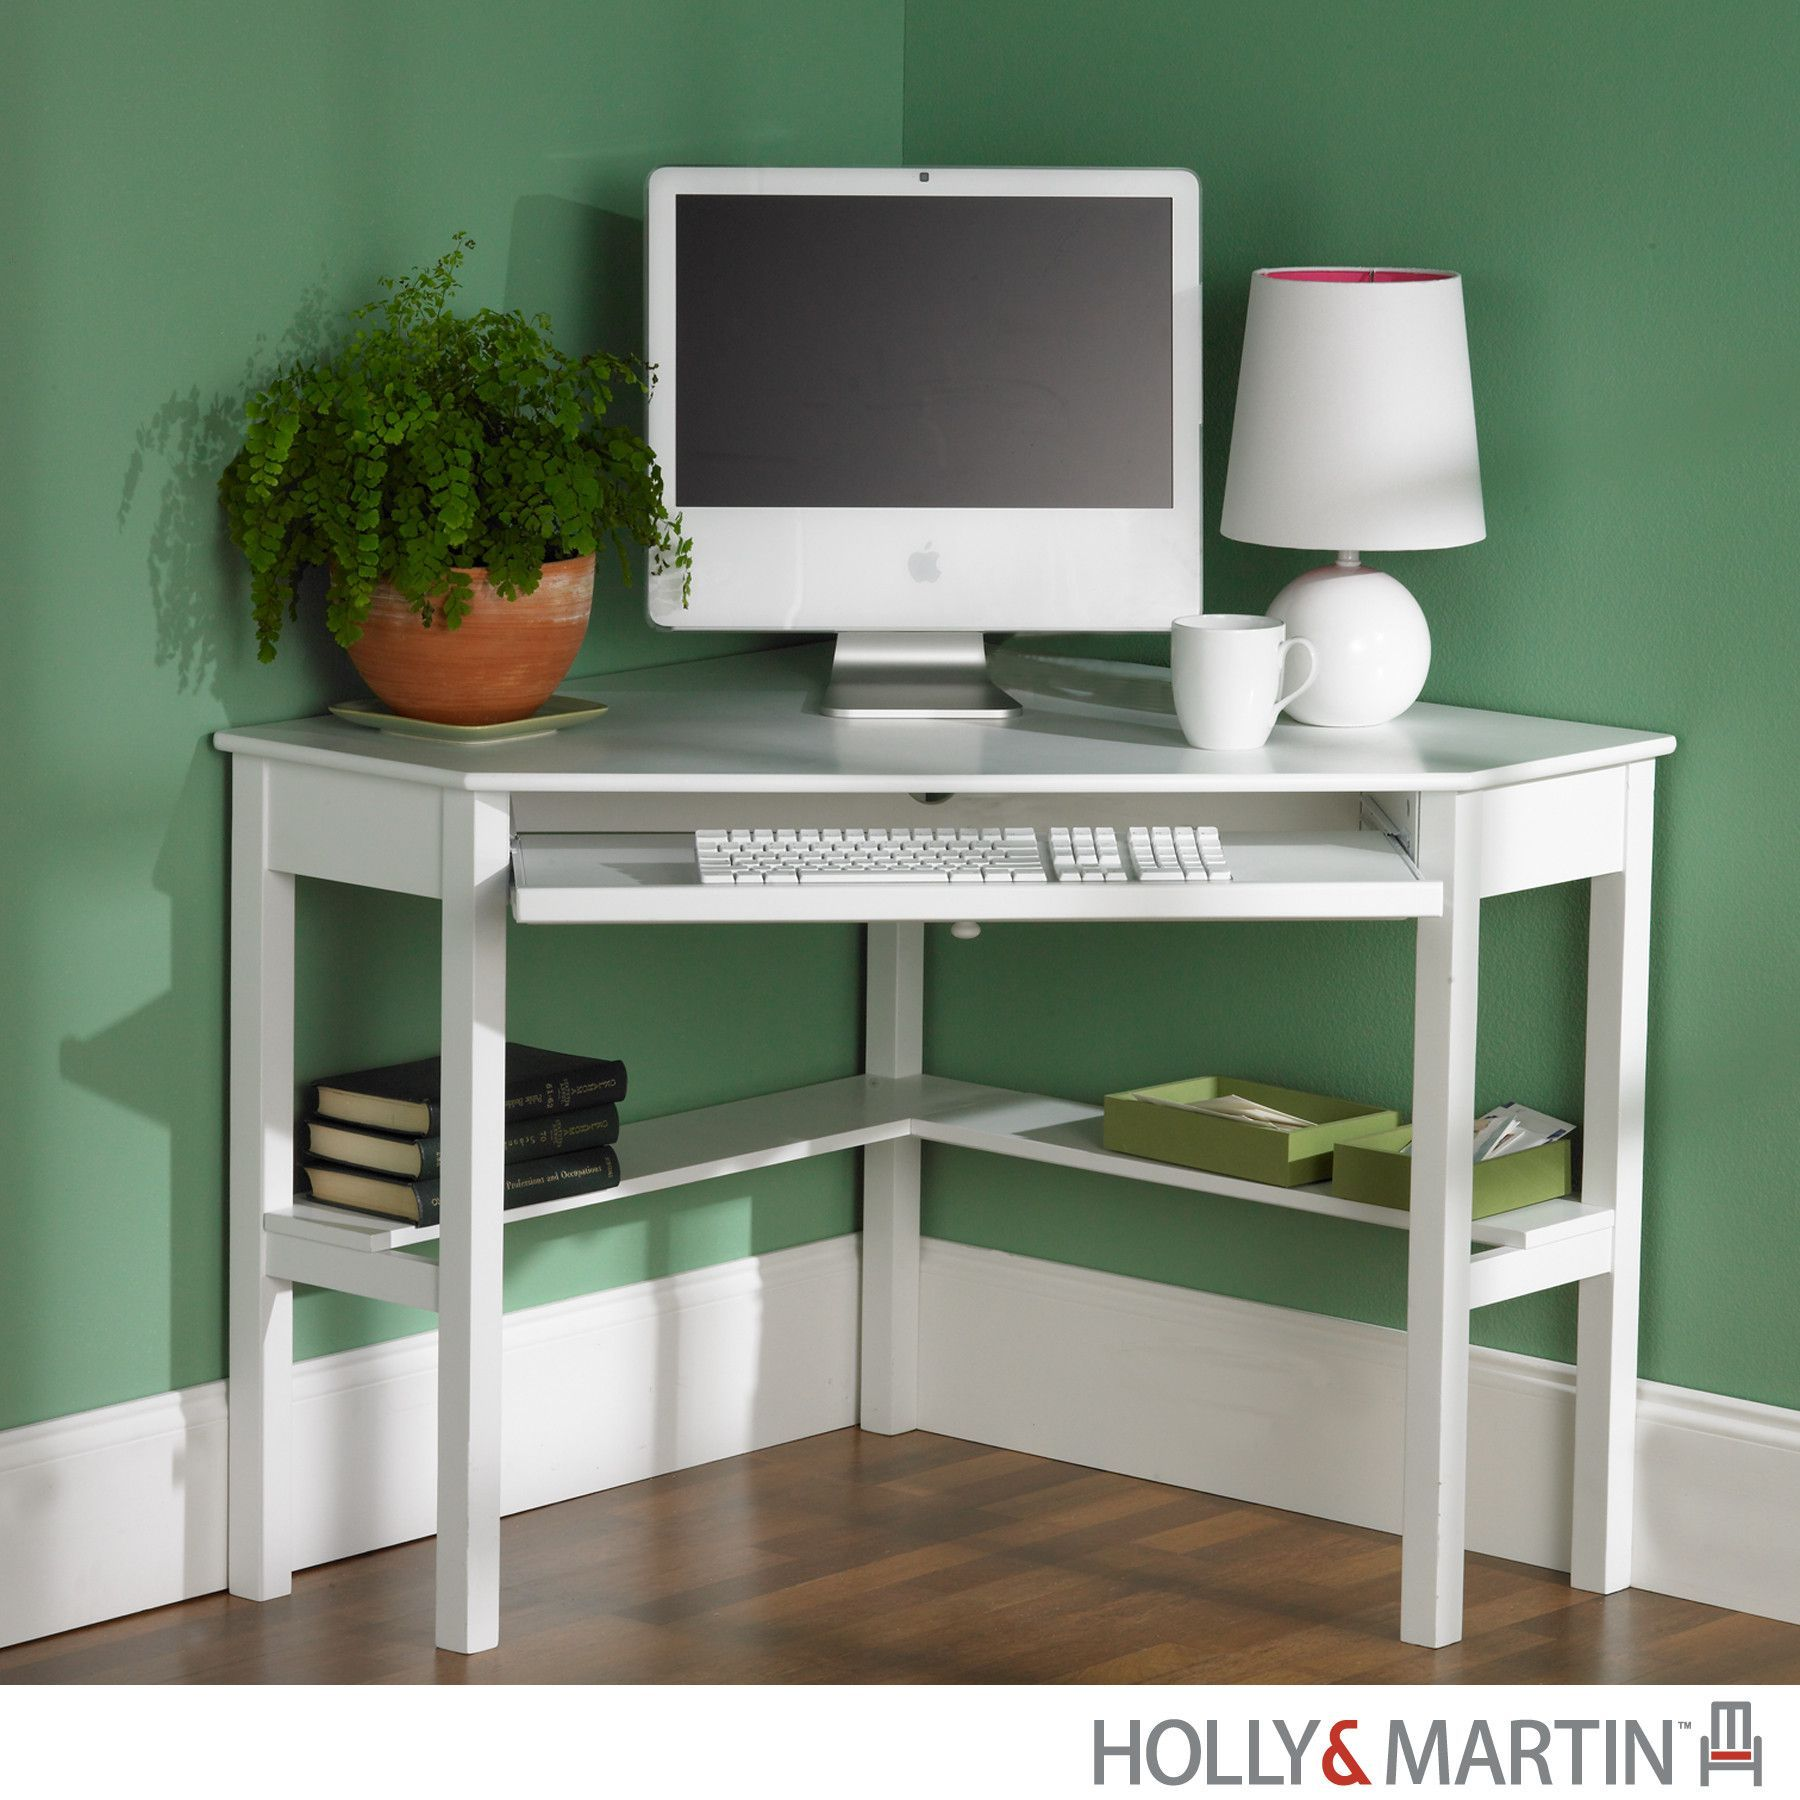 buy holly  martin alexander corner computer deskwhite at harvey  - buy holly  martin alexander corner computer deskwhite at harvey  haleyfor only